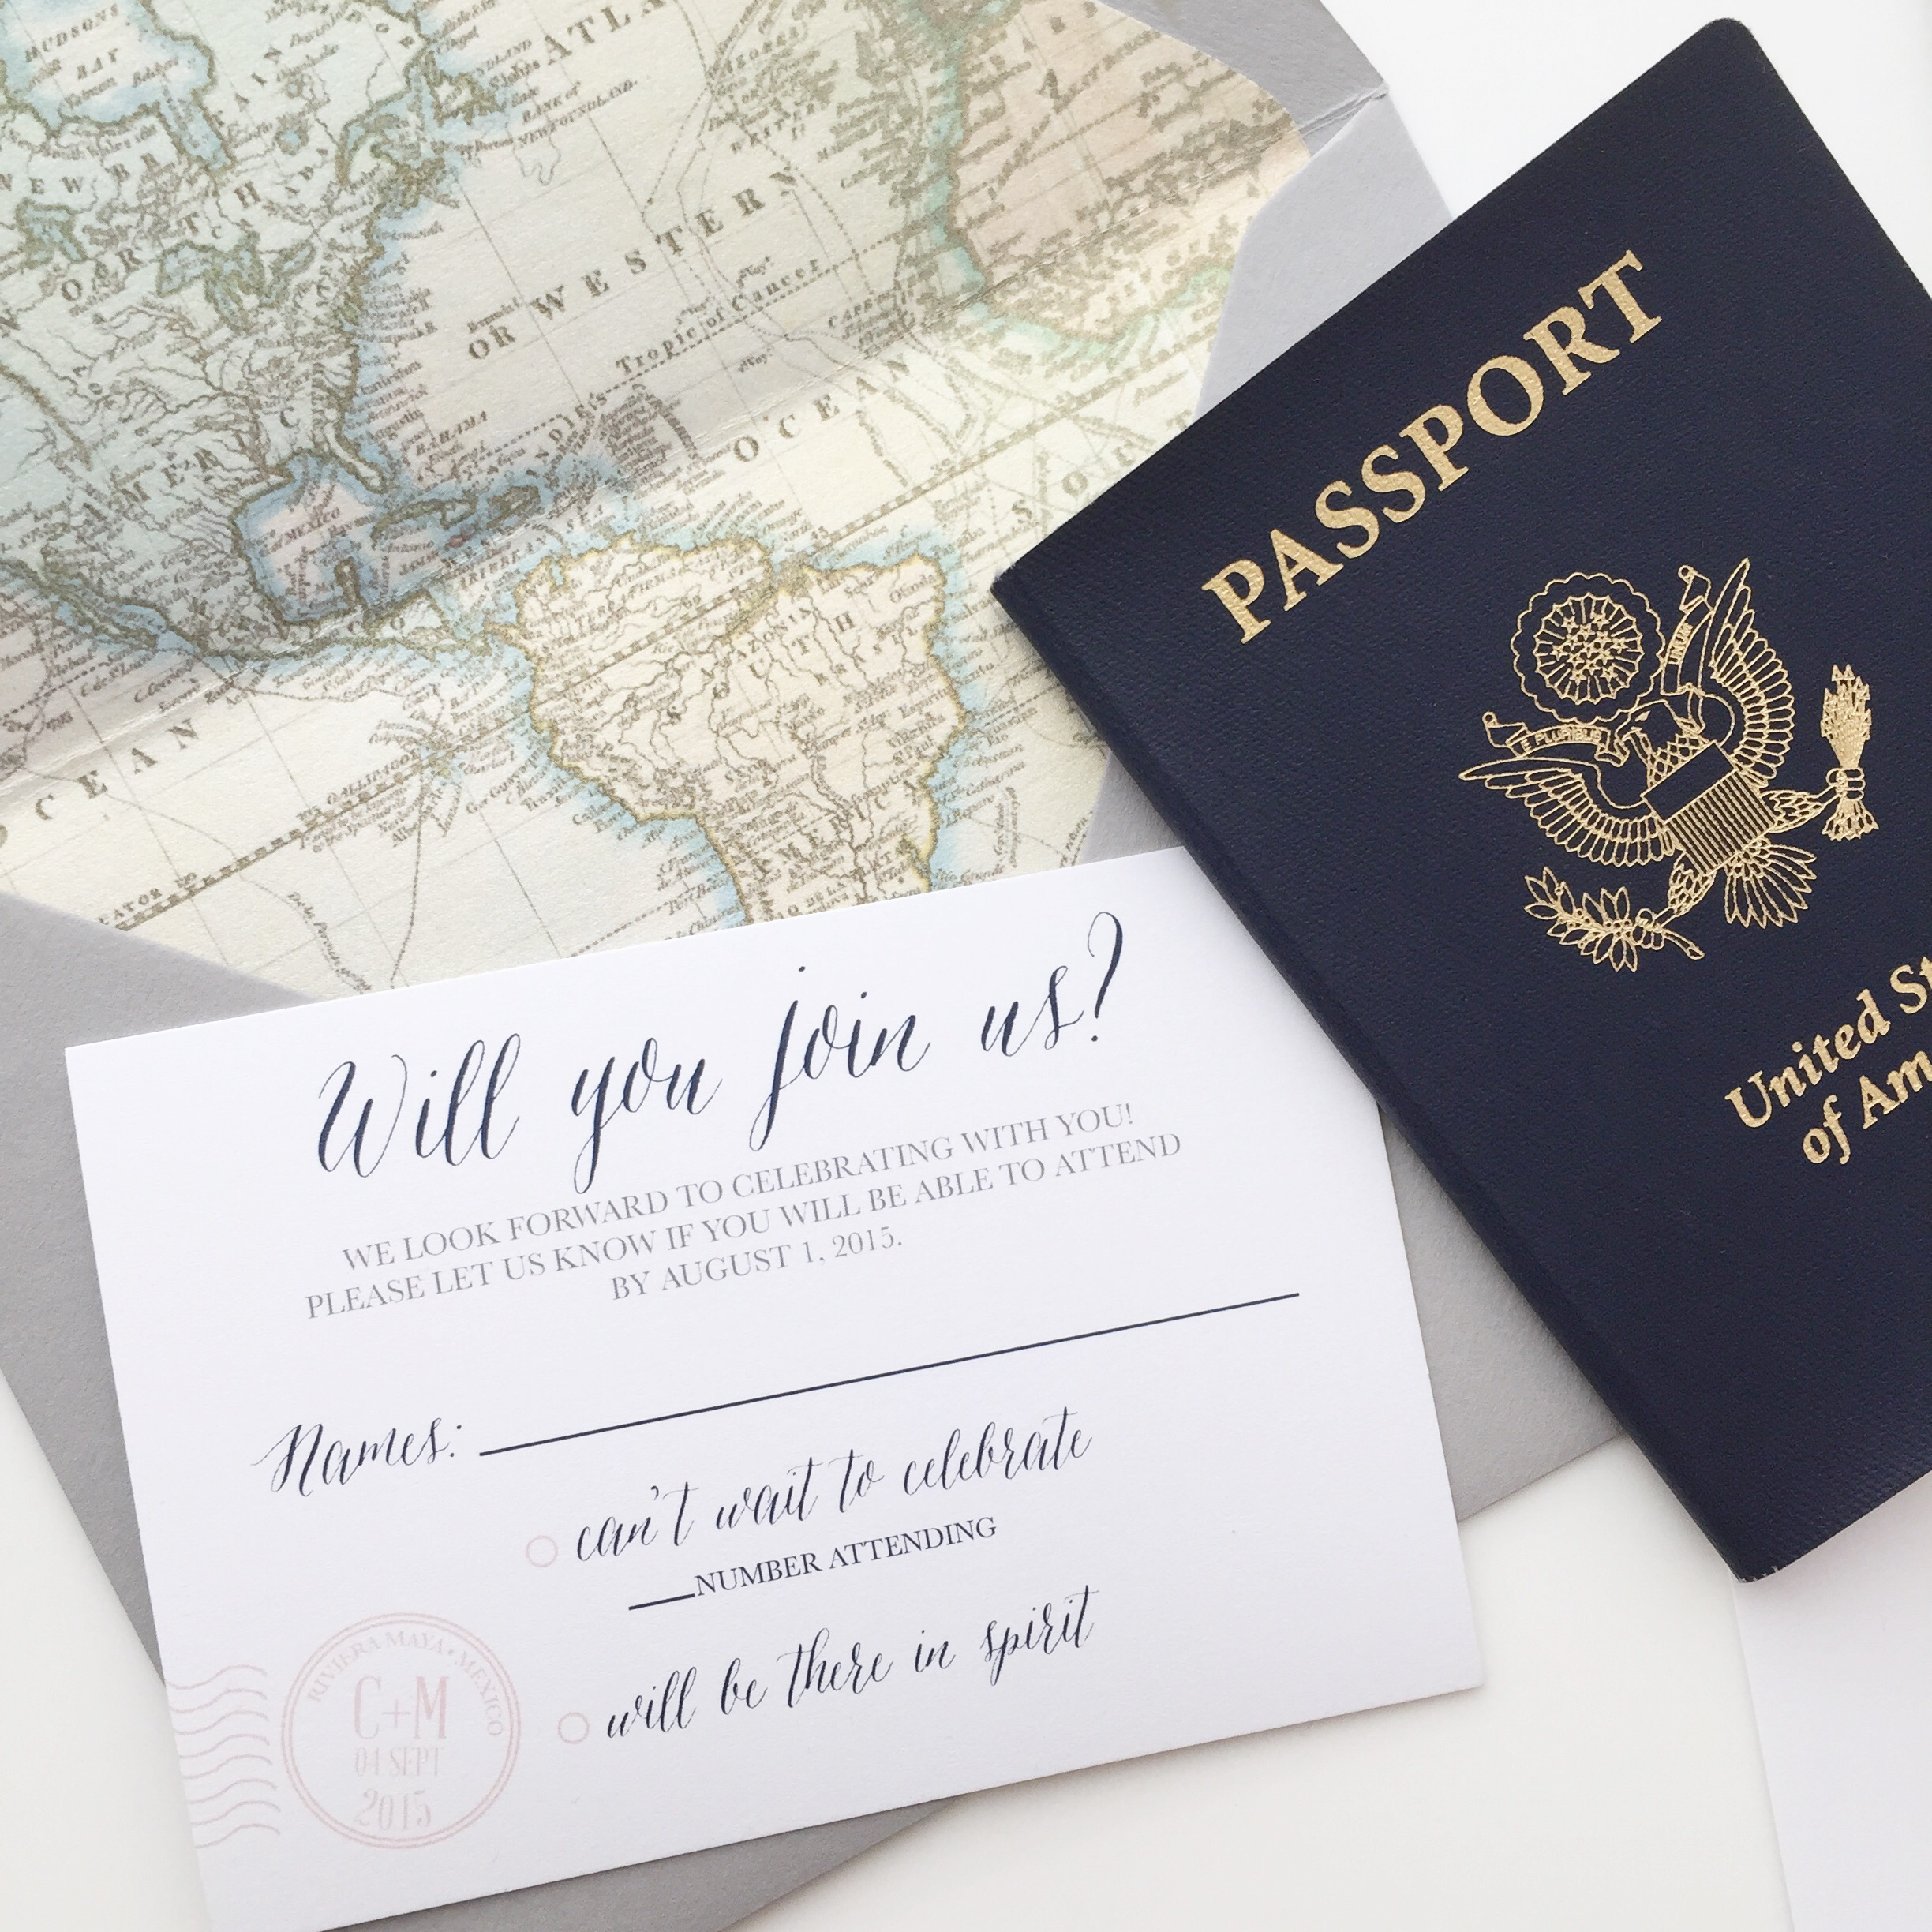 FEATURE: Travel Themed Wedding Invititations | oh my! designs by steph